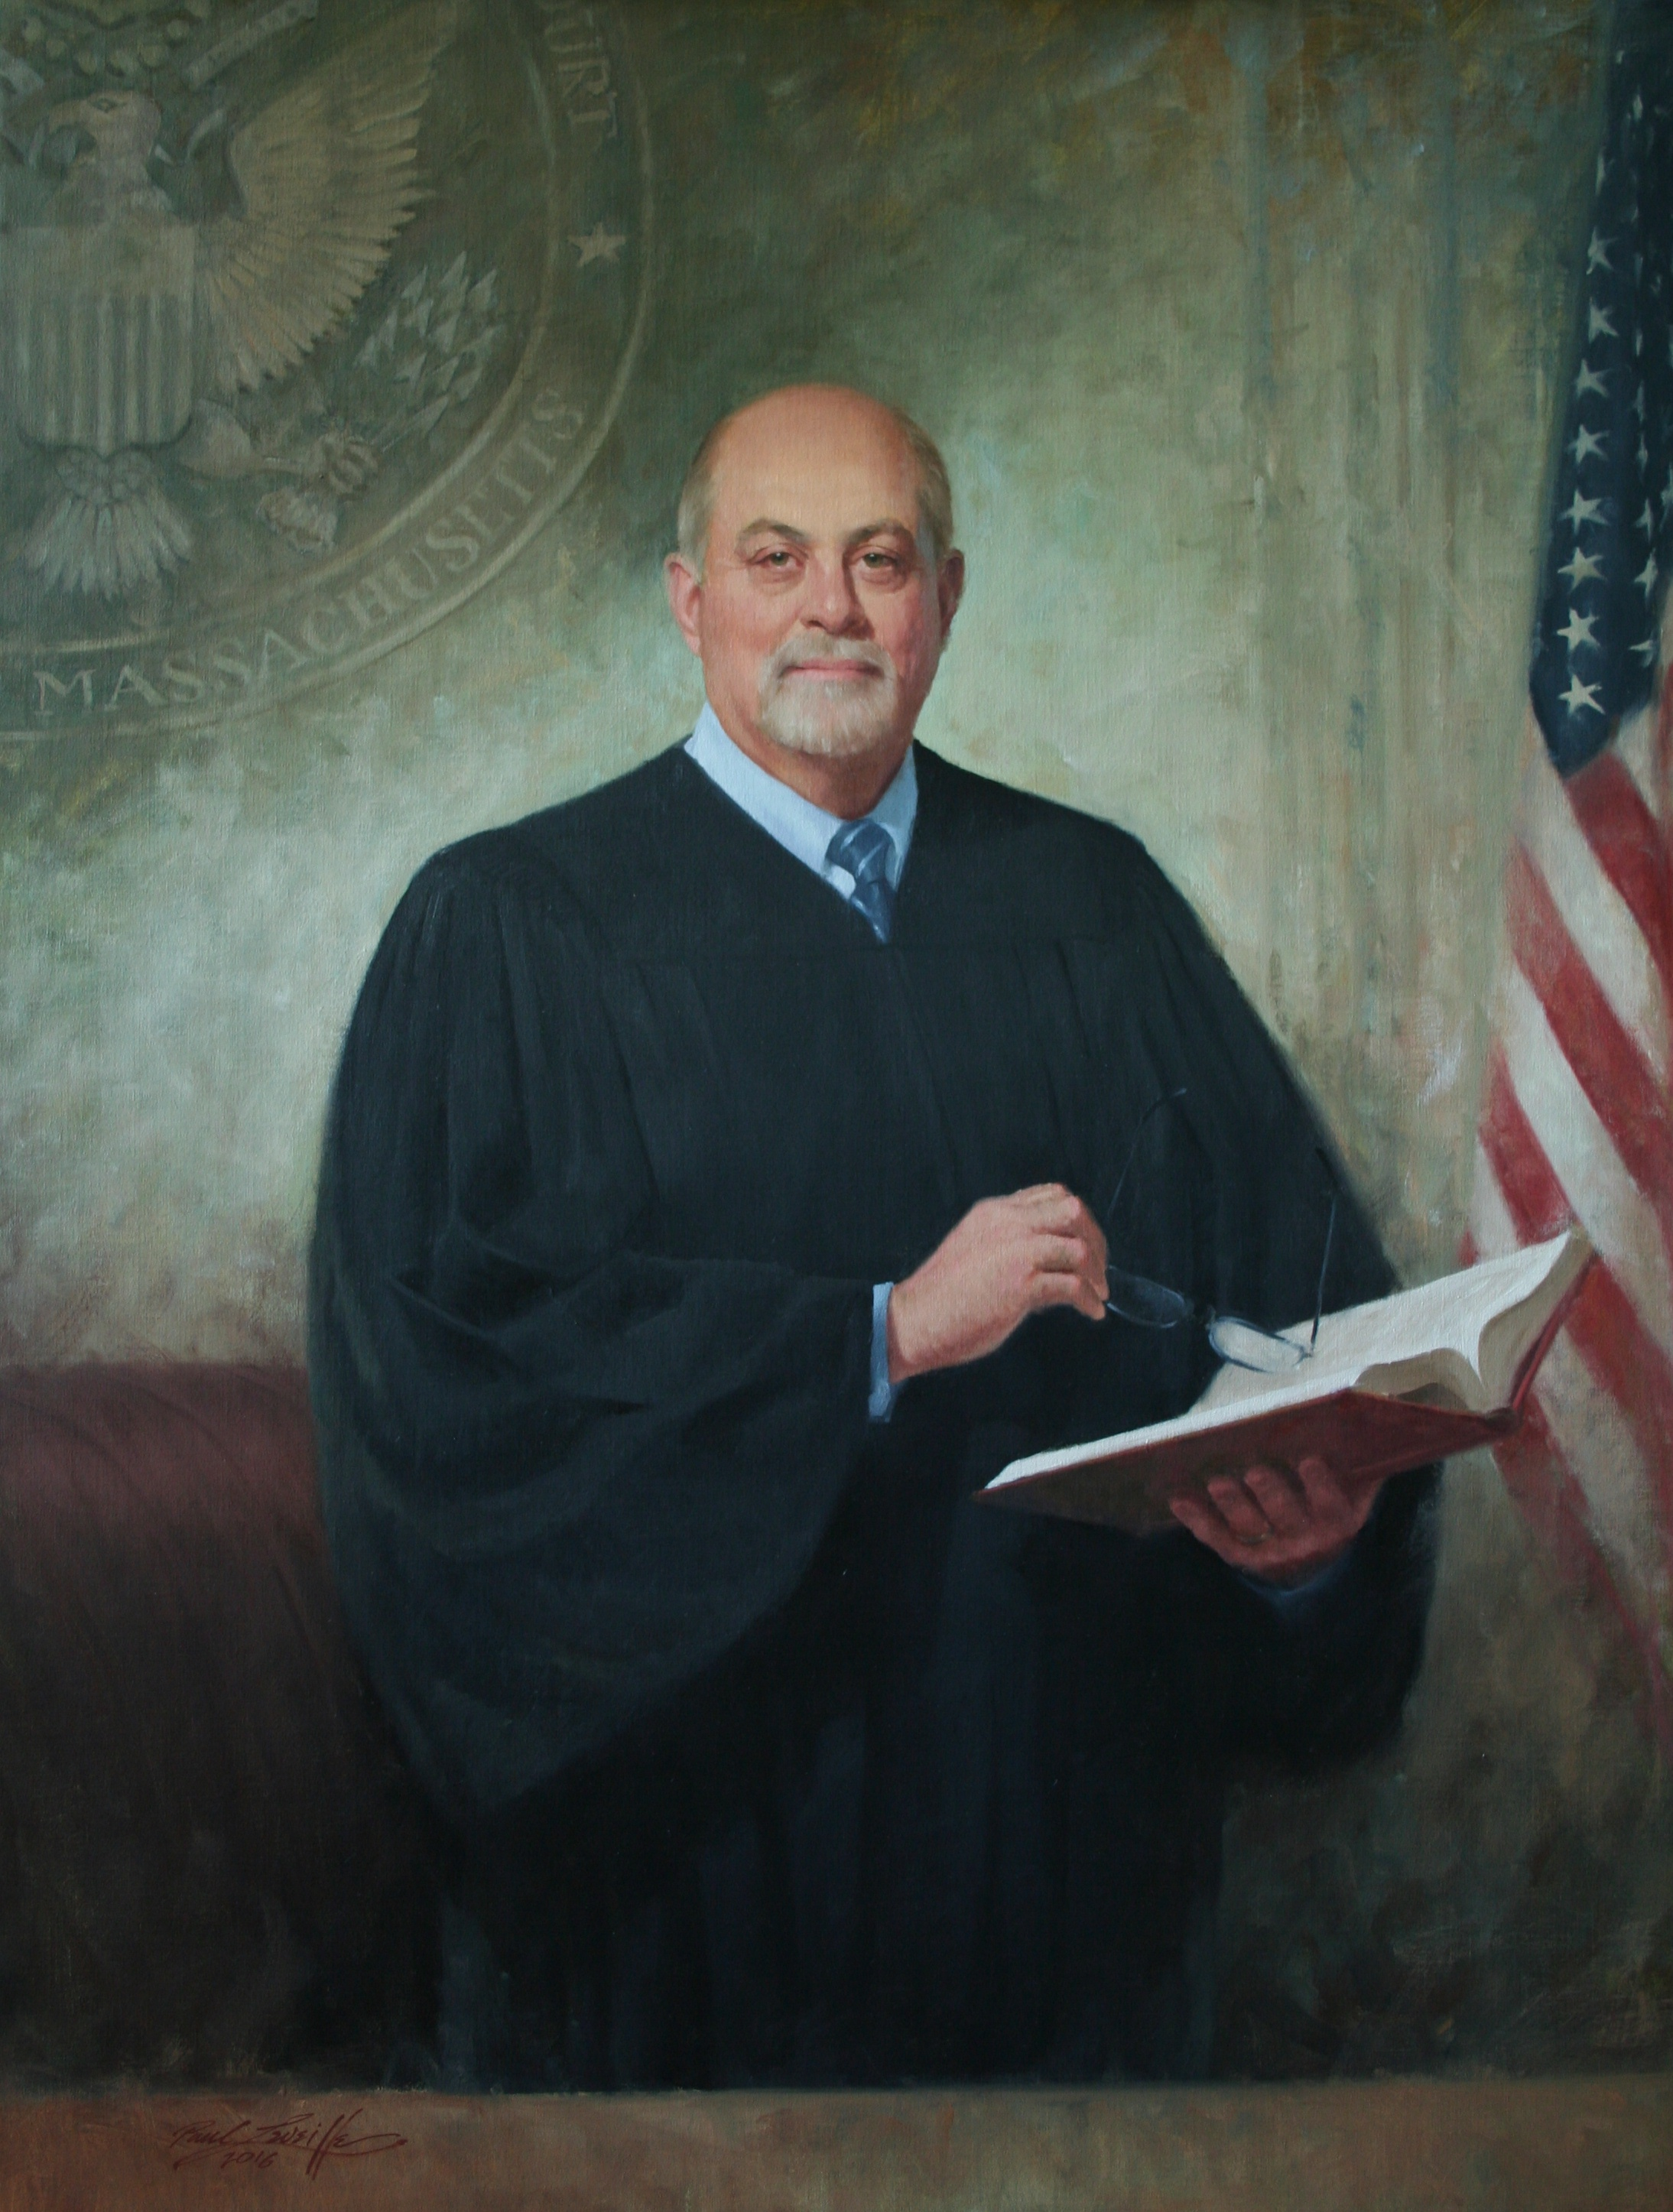 Judge Boroff final